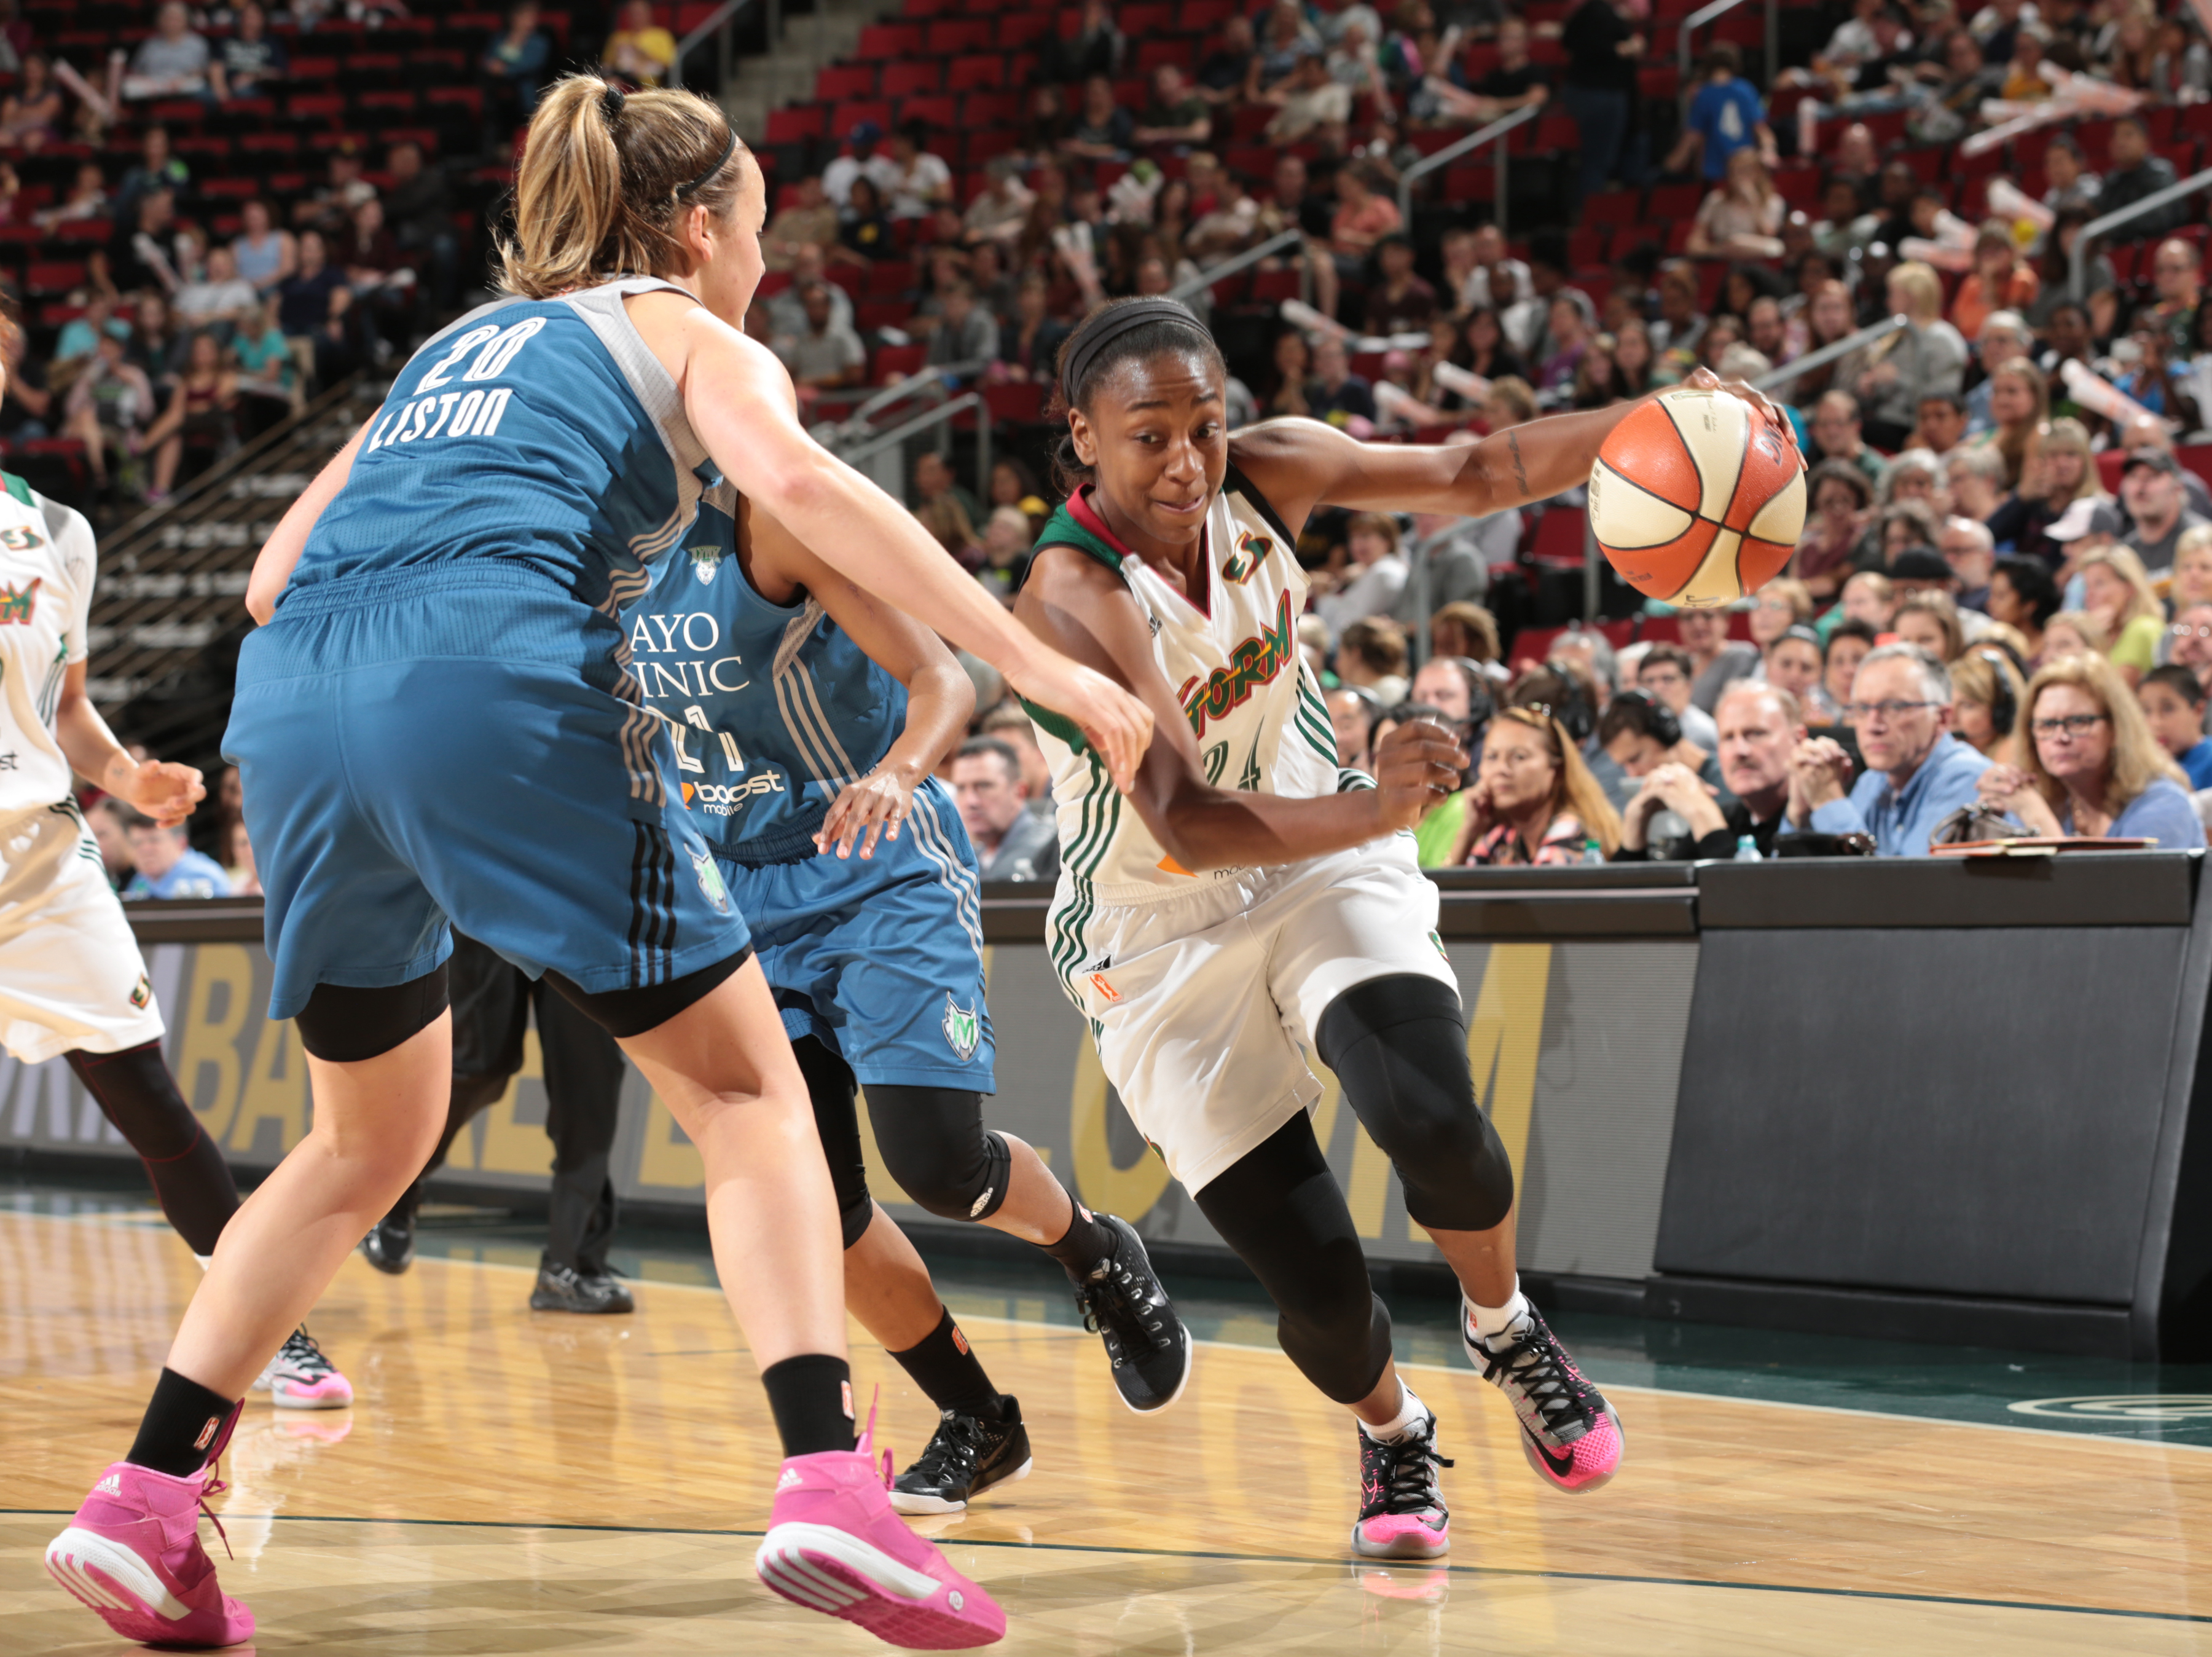 SEATTLE, WA - SEPTEMBER 11: Jewell Loyd #24 of the Seattle Storm handles the ball against the Minnesota Lynx on September 11, 2015 at Key Arena in Seattle, Washington. (Photo by Joshua Huston/NBAE via Getty Images)